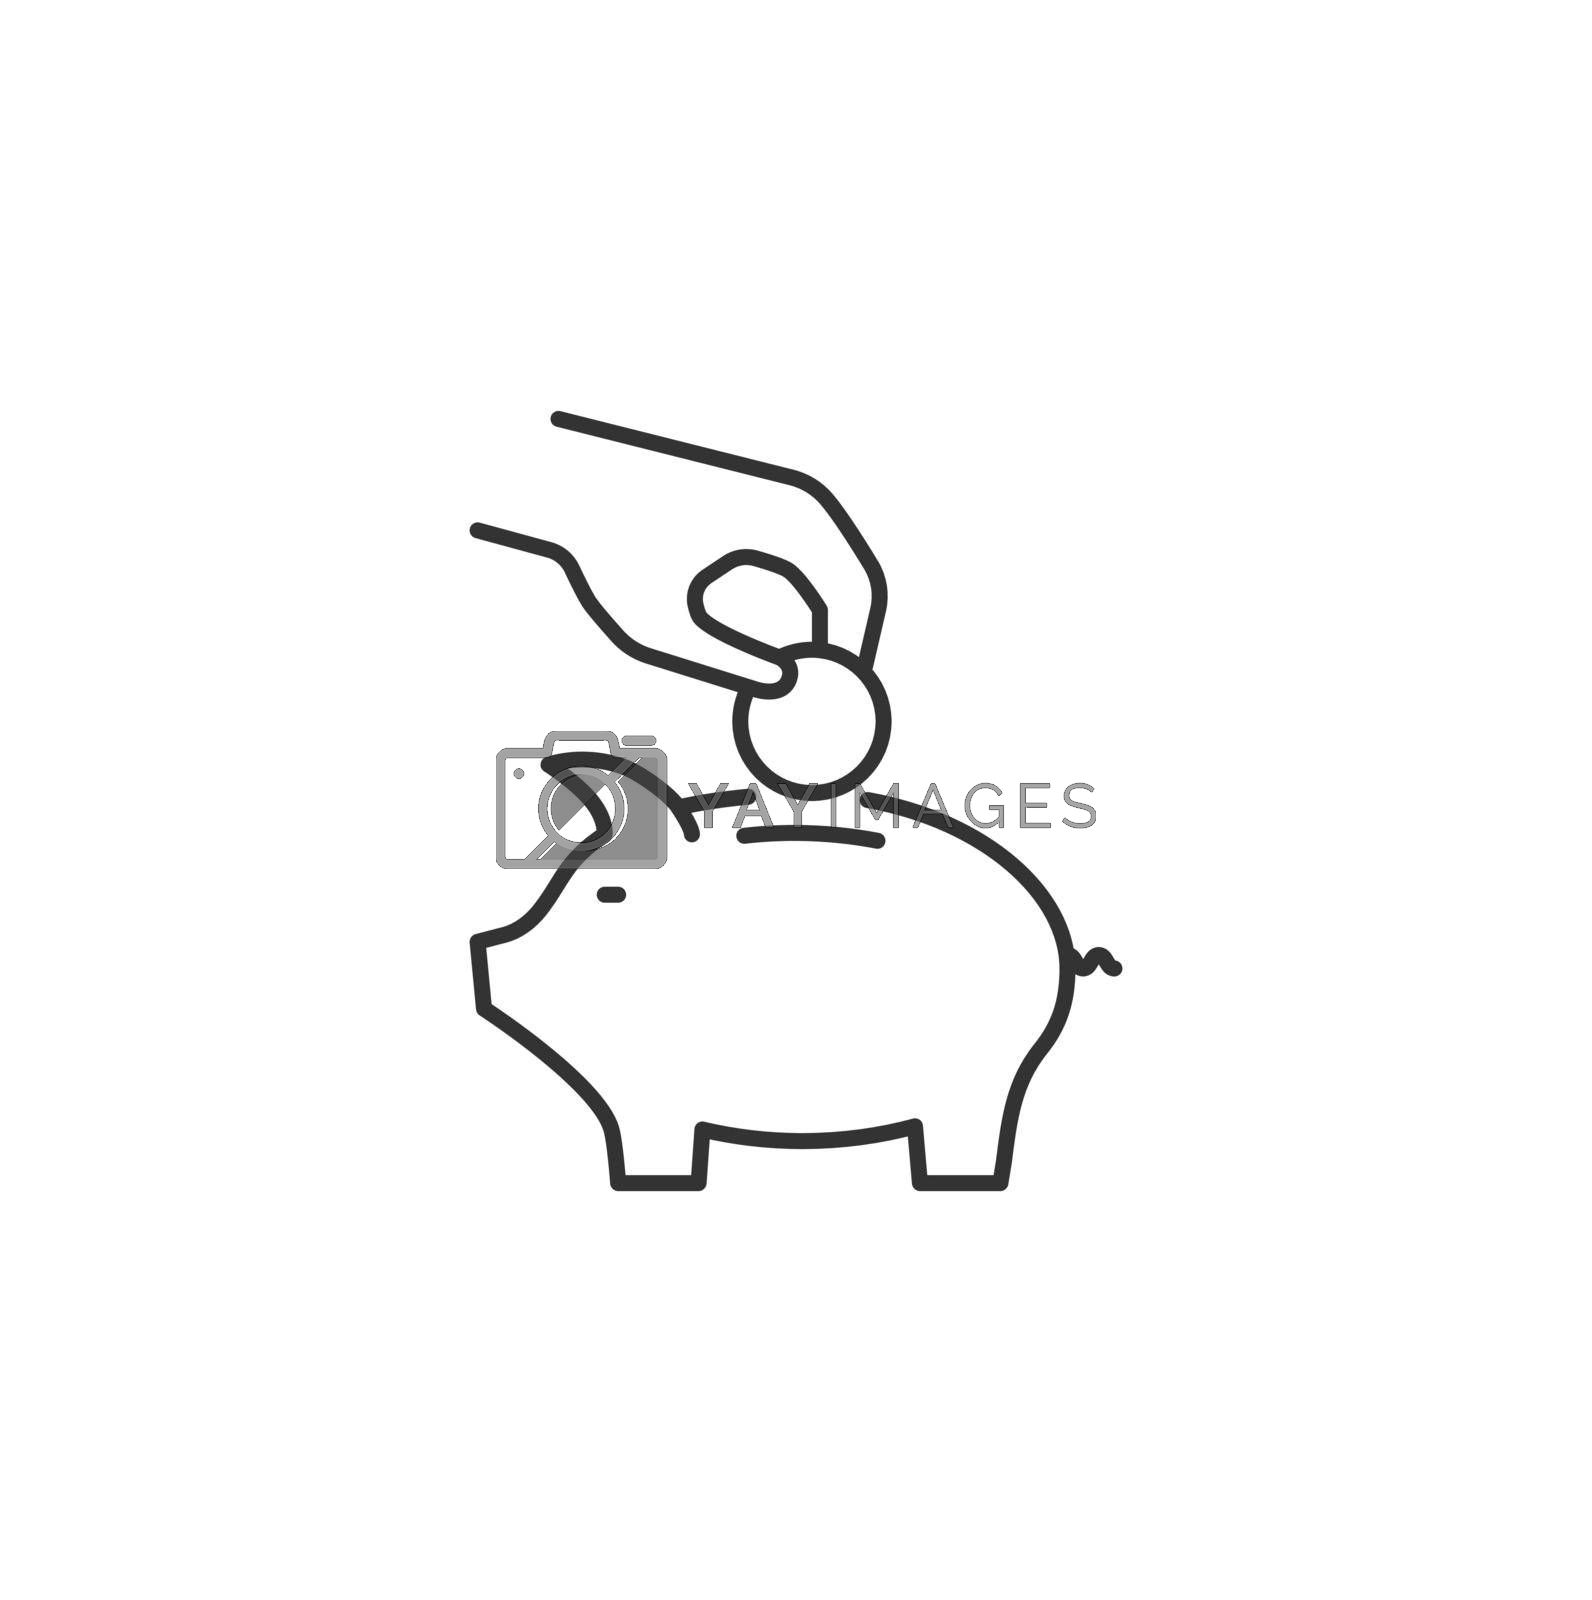 Hand Puts Coin in Piggy Bank Related Vector Line Icon. Sign Isolated on the White Background. Editable Stroke EPS file. Vector illustration.